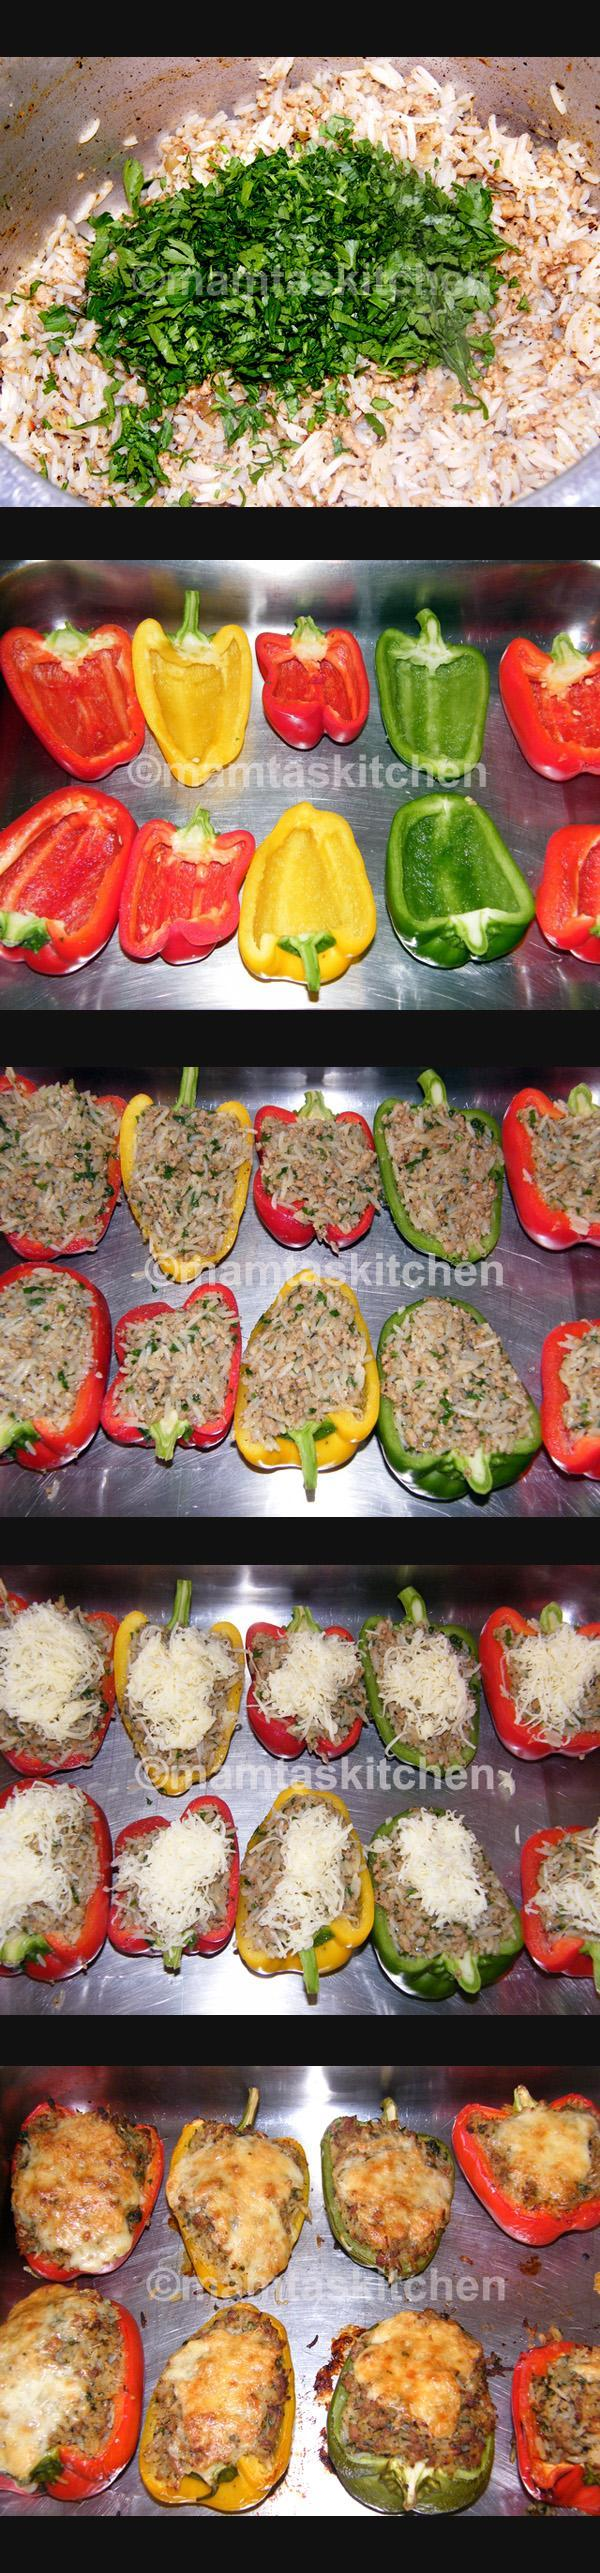 Stuffed Peppers 4, with Pork Mince and Rice